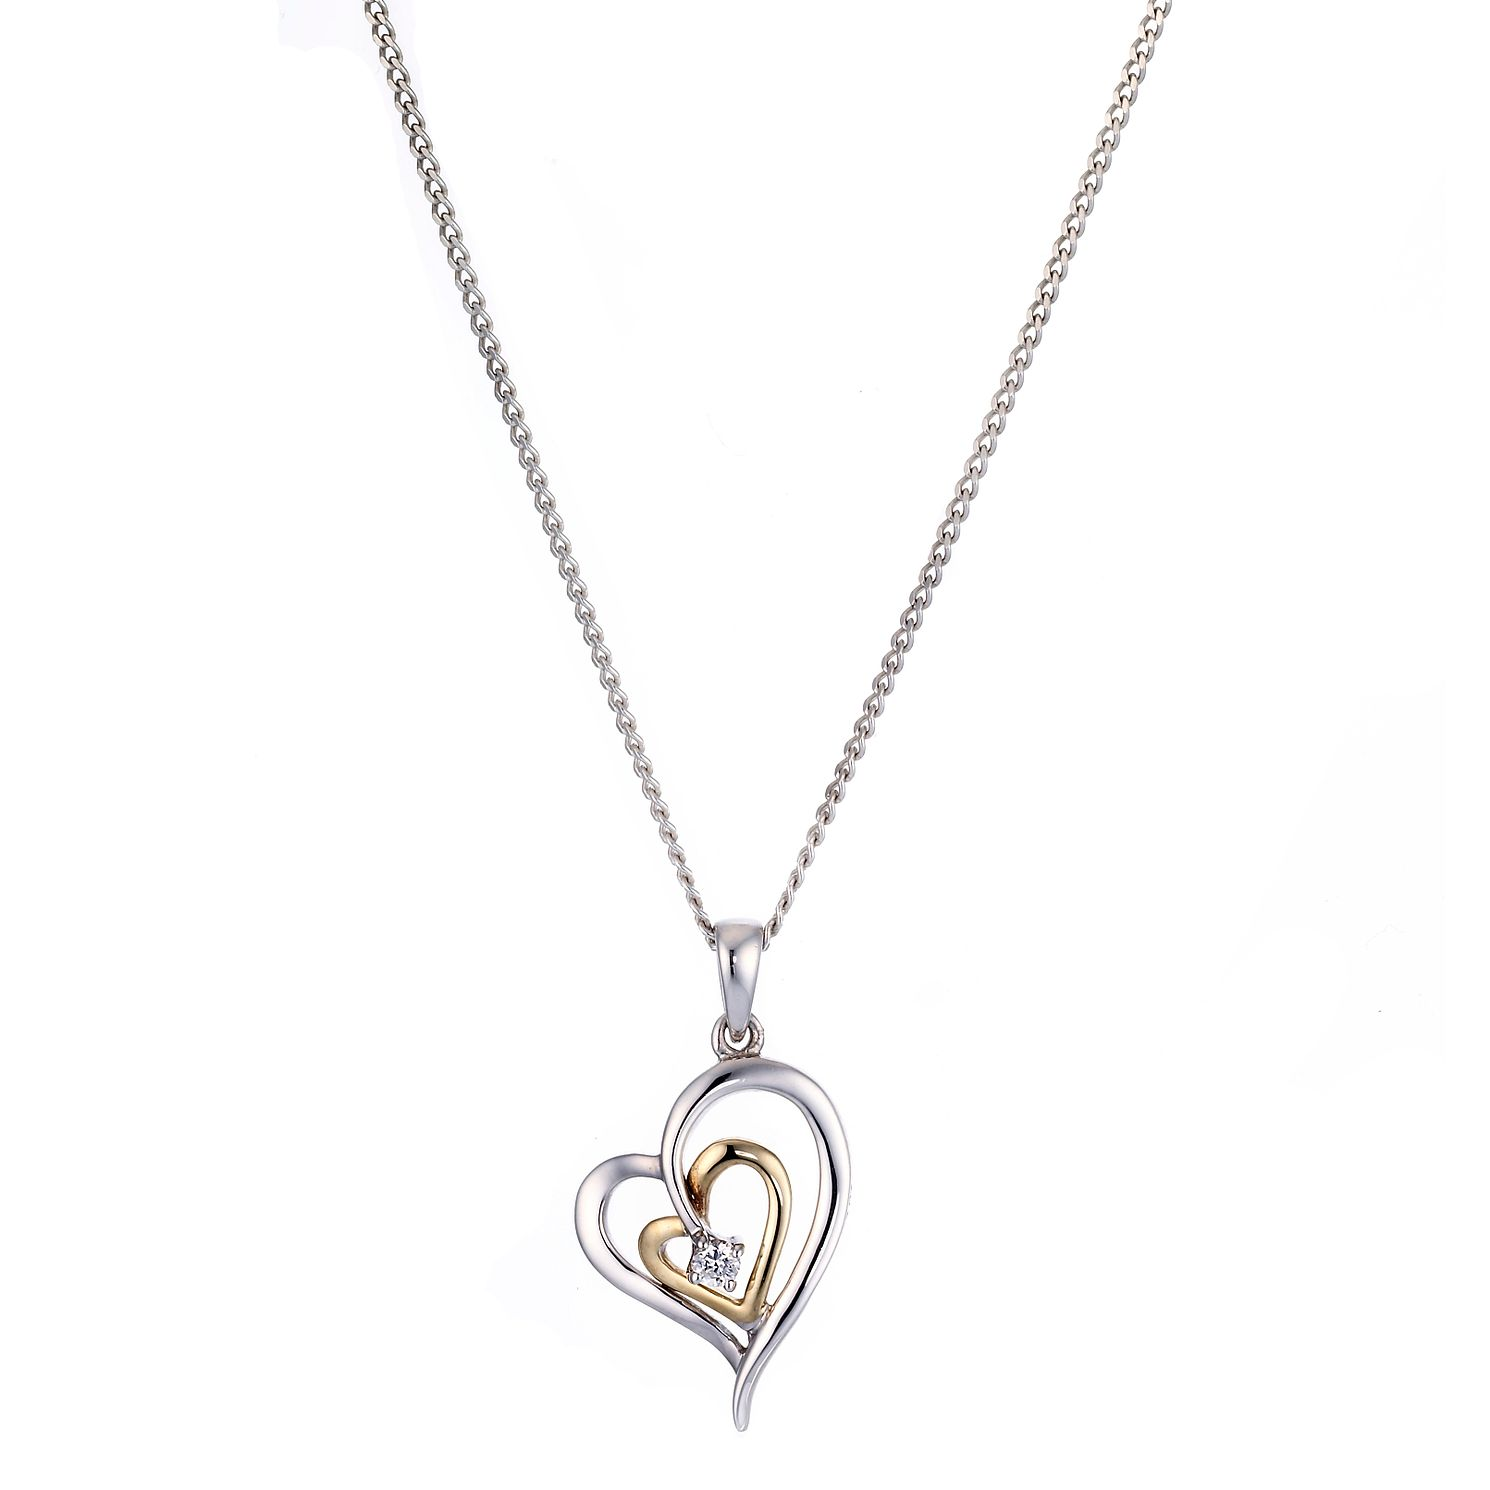 hea kith cu minime silver daughter products ros gold me collection necklace jewellery mother plated mini heart jewelry sterling min rose kin